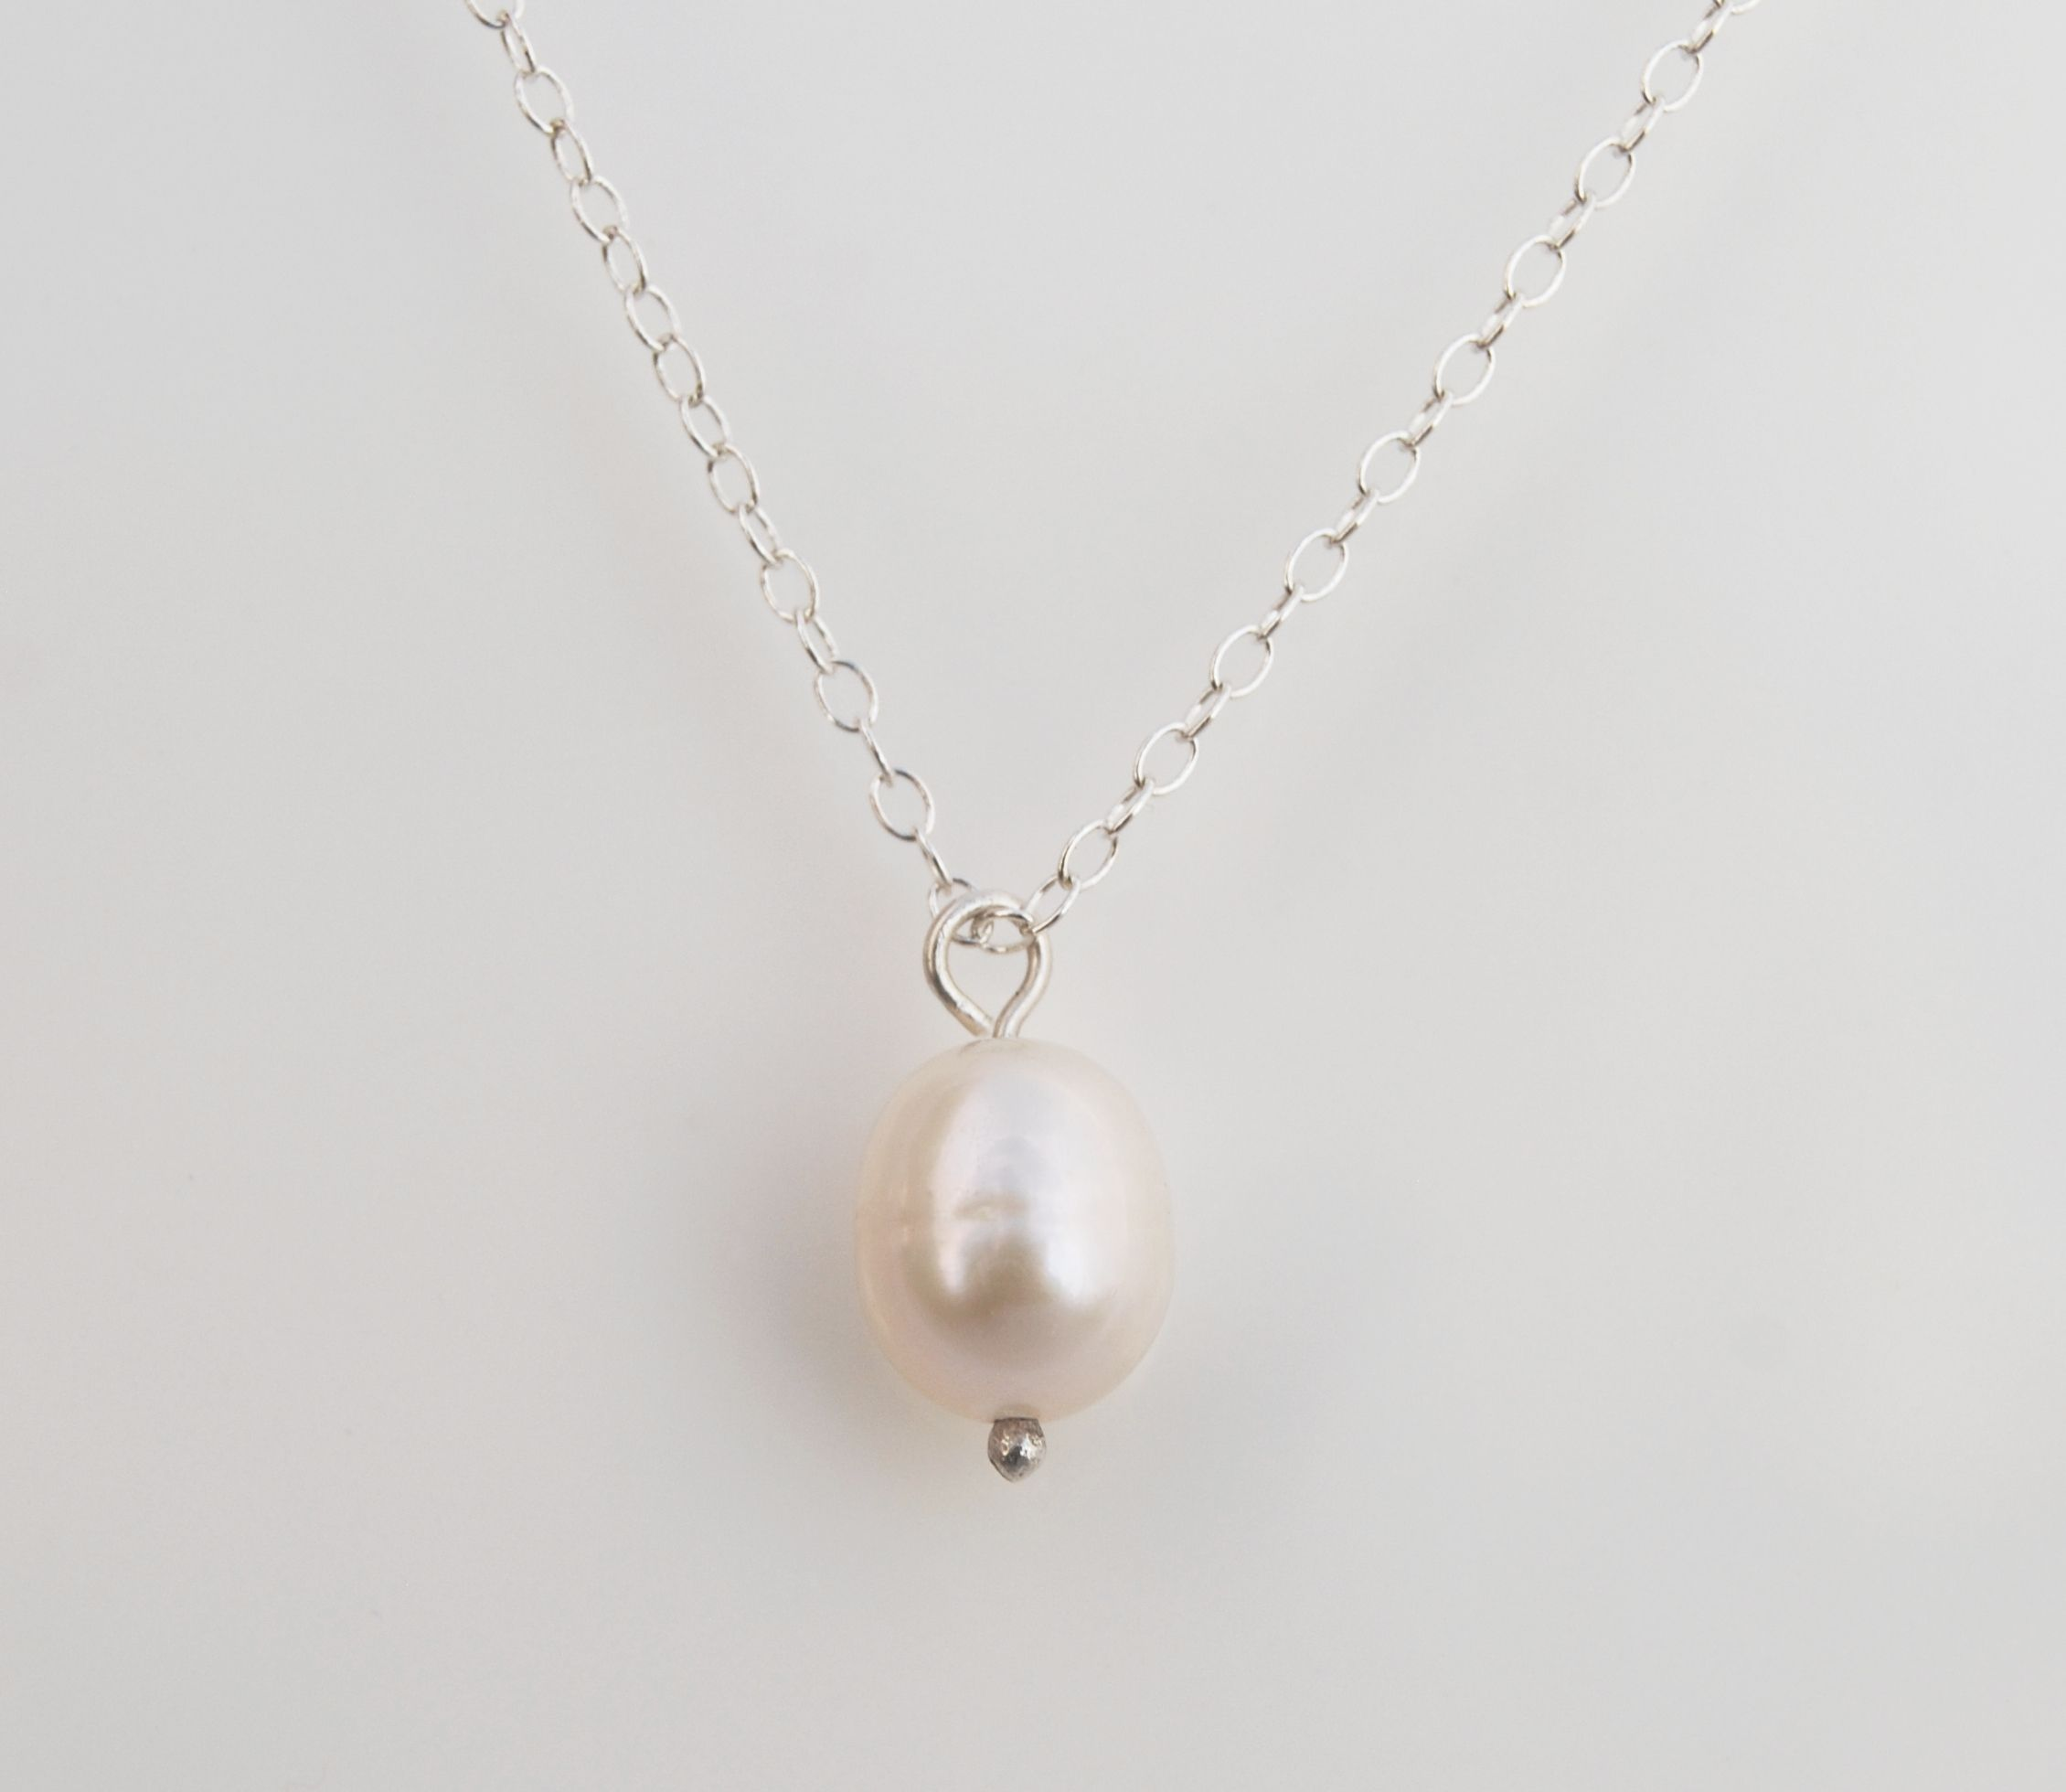 refuse sink necklace to with u p pearl loving pendant set single